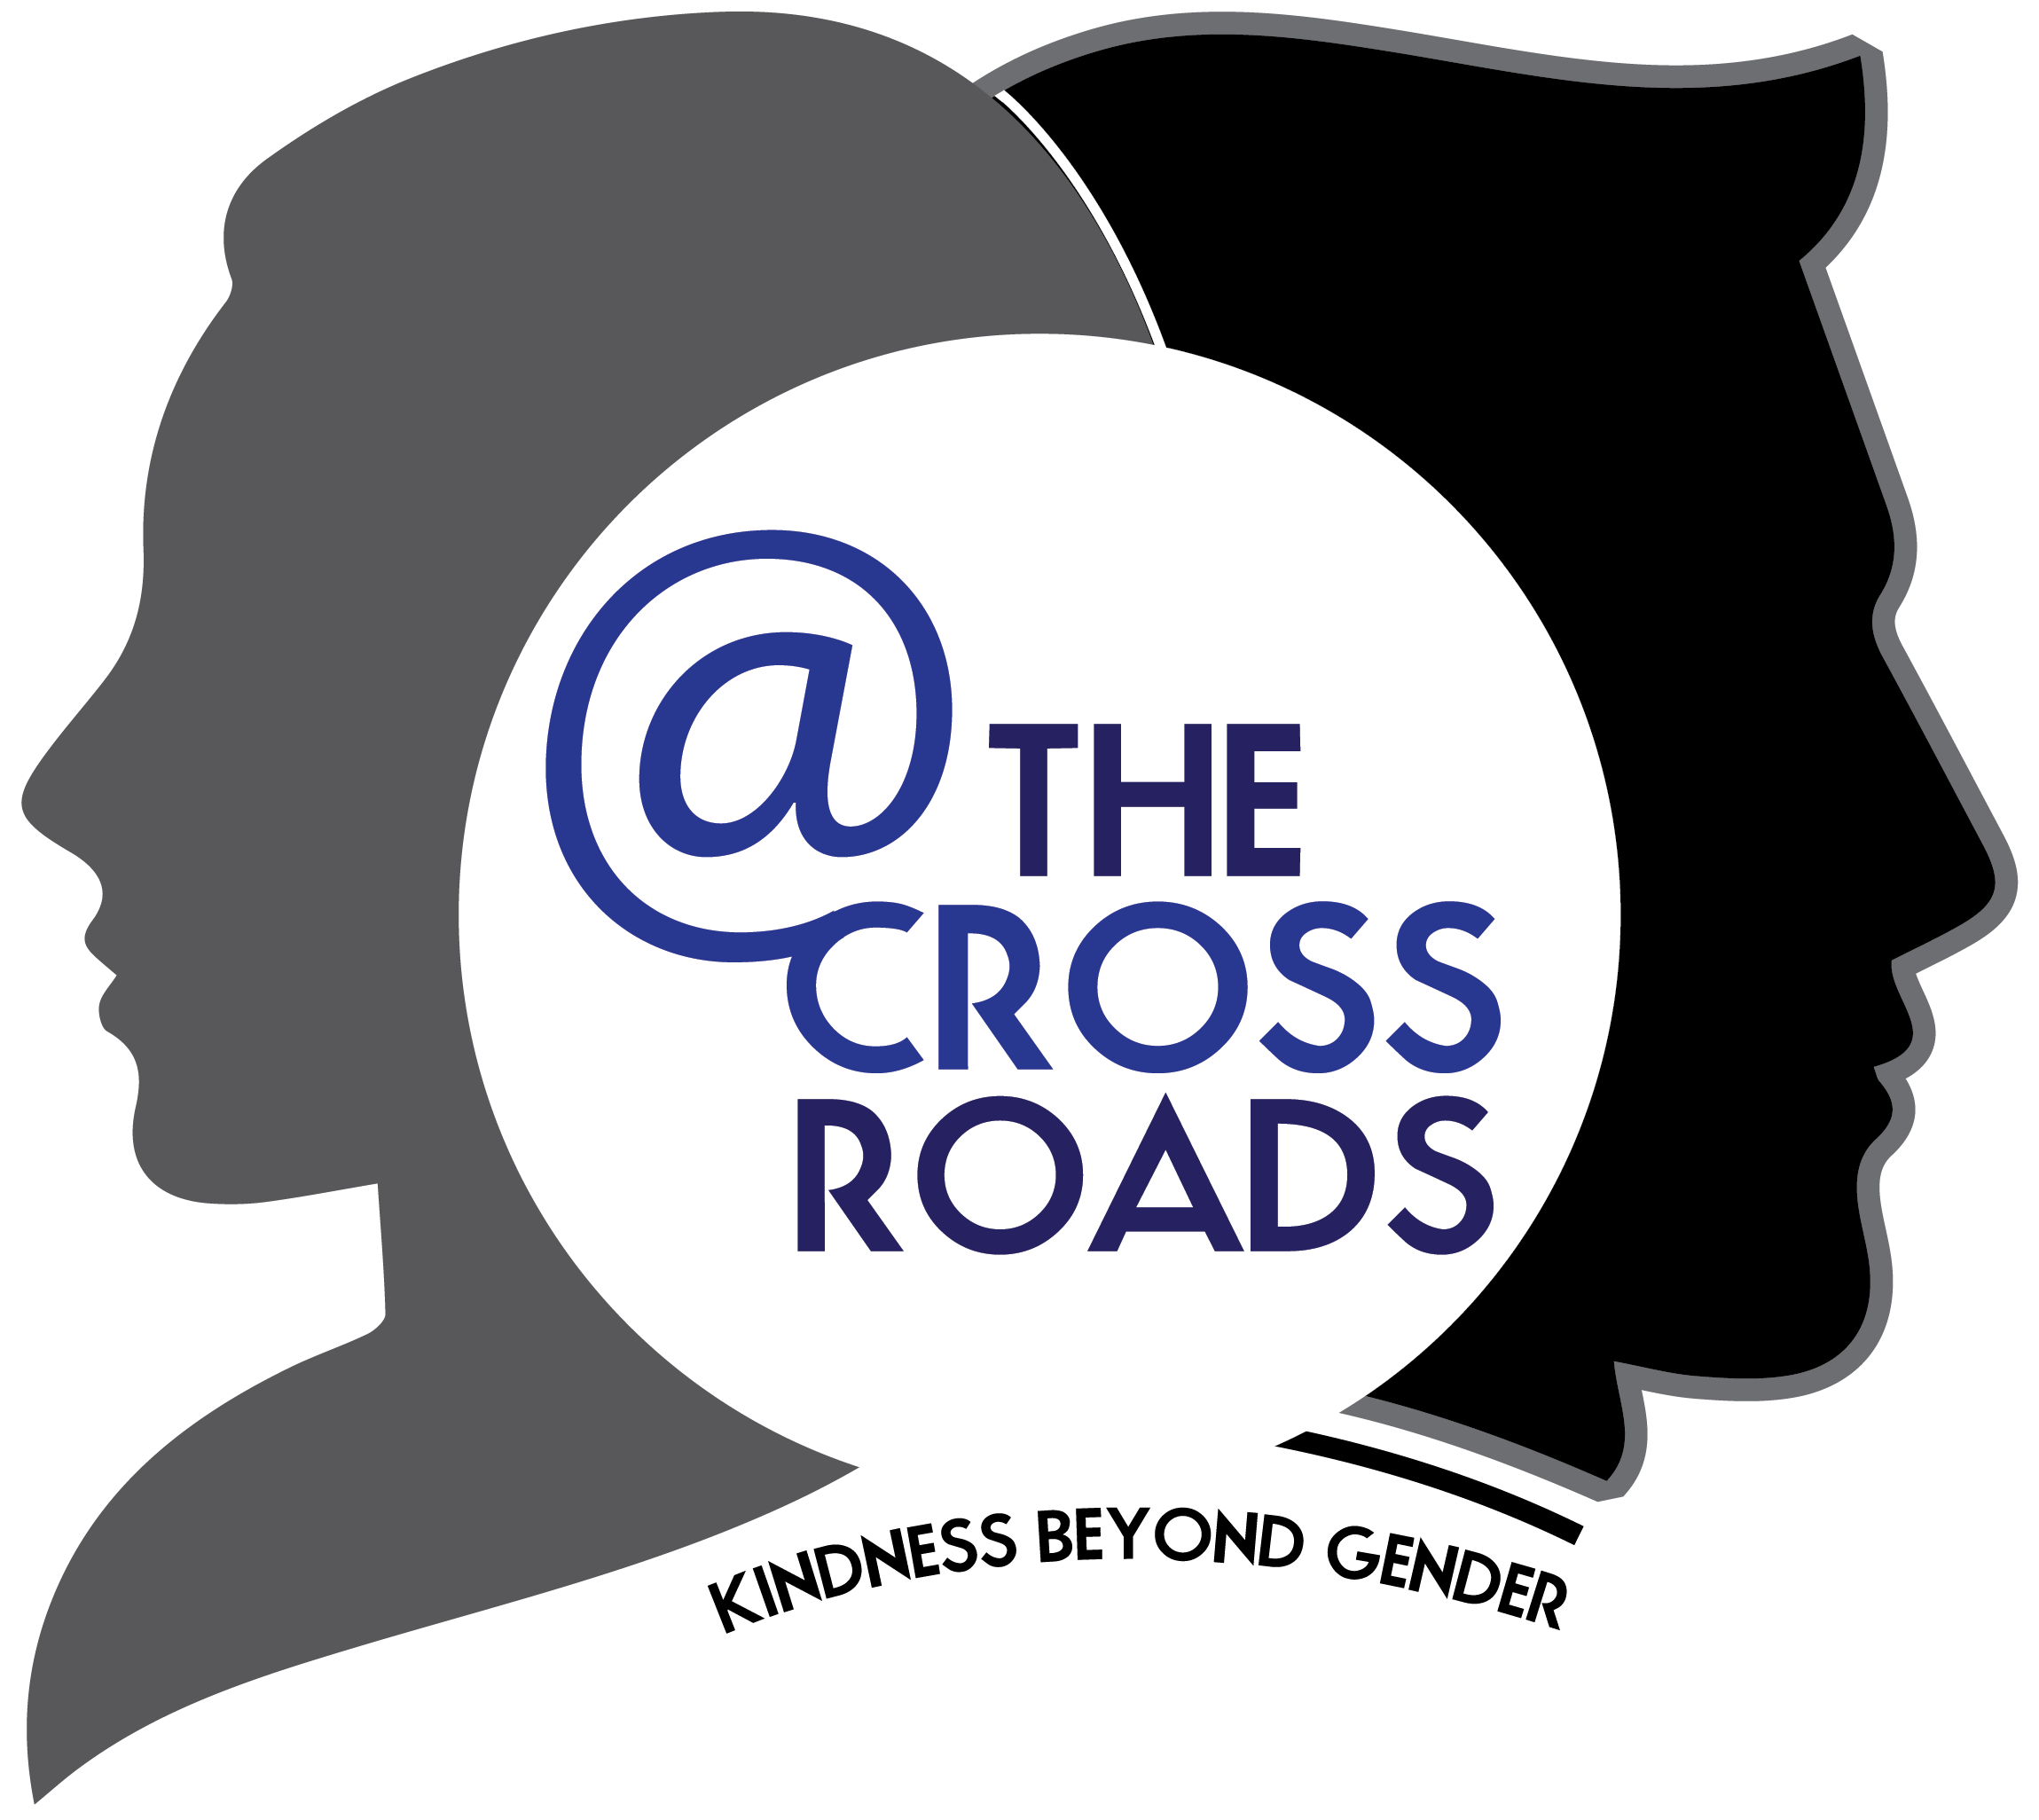 Clipart walking berjalan. The cross roads kindness